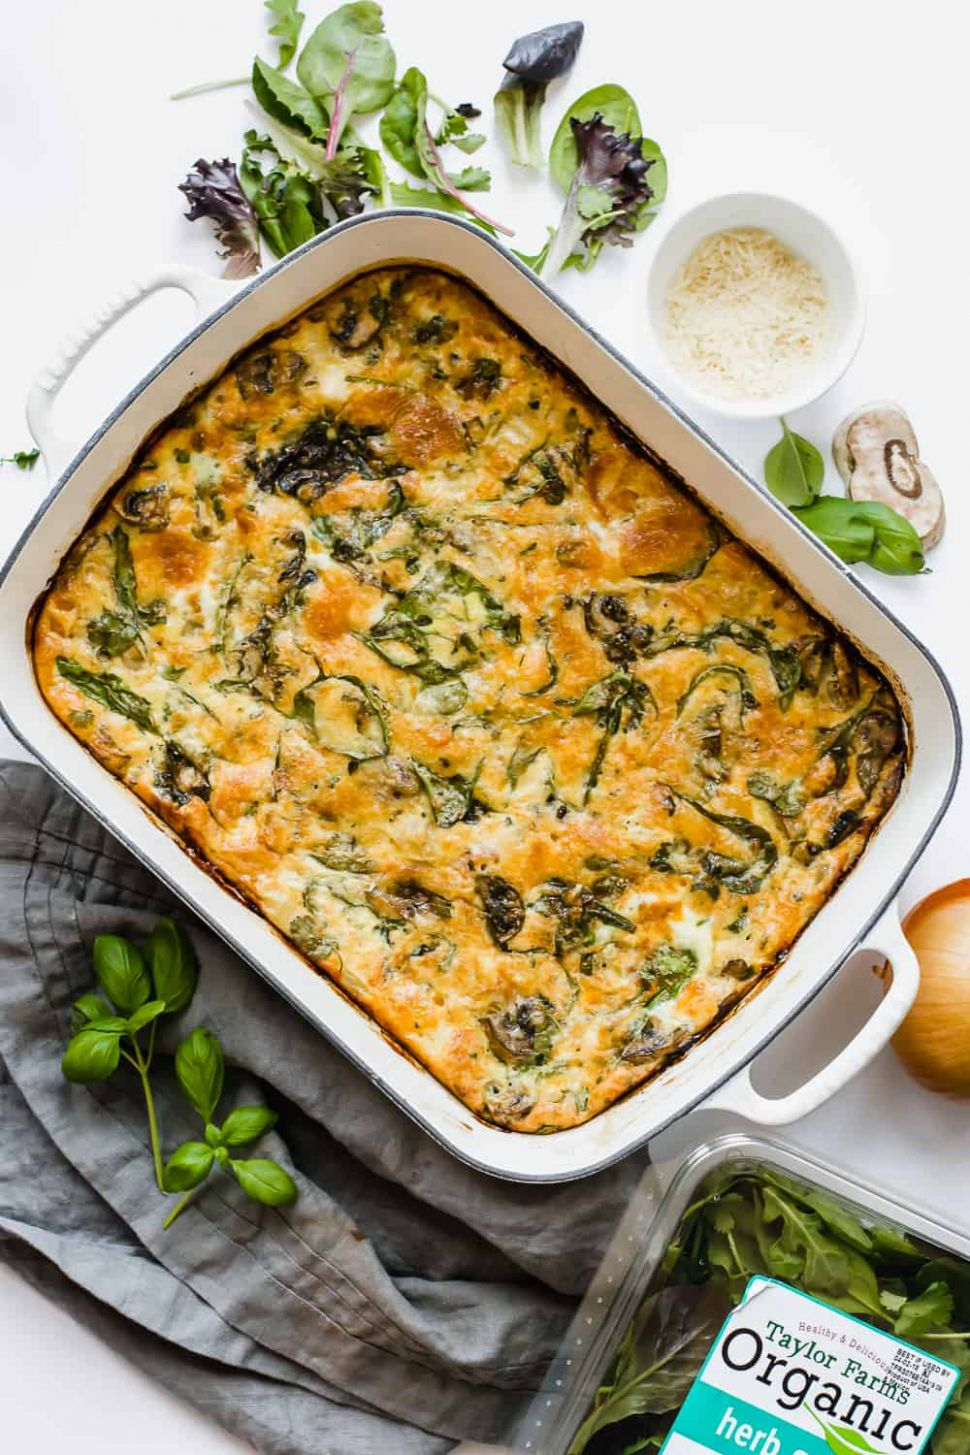 Easy Baked Frittata Recipe with Spinach (Gluten-Free) - Egg Recipes Gluten Free